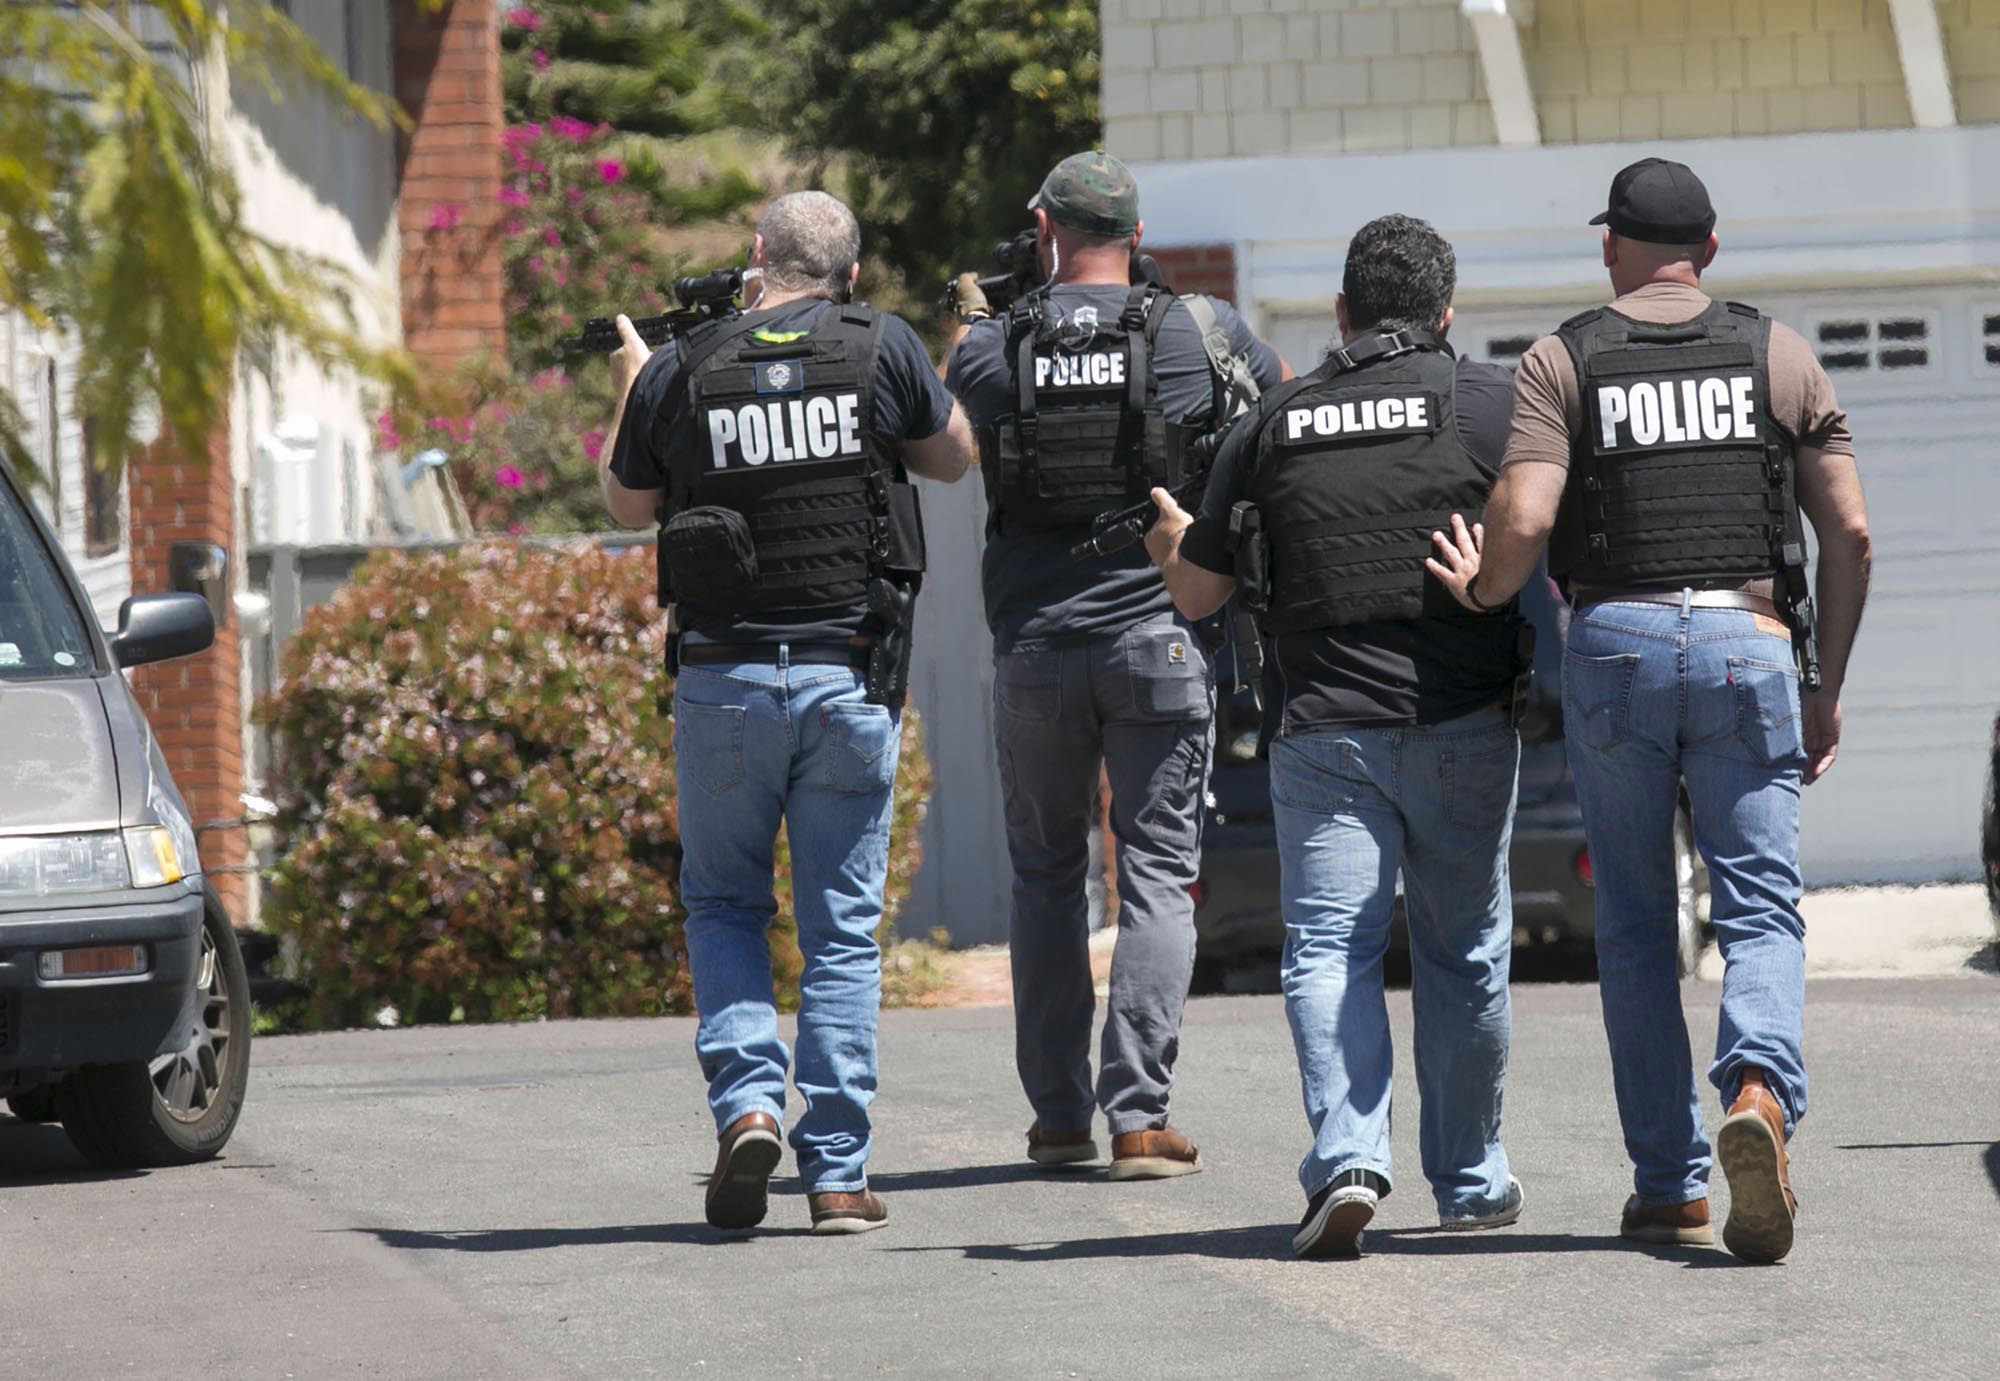 Poway synagogue shooter inspired by Hitler, unsealed affidavit shows